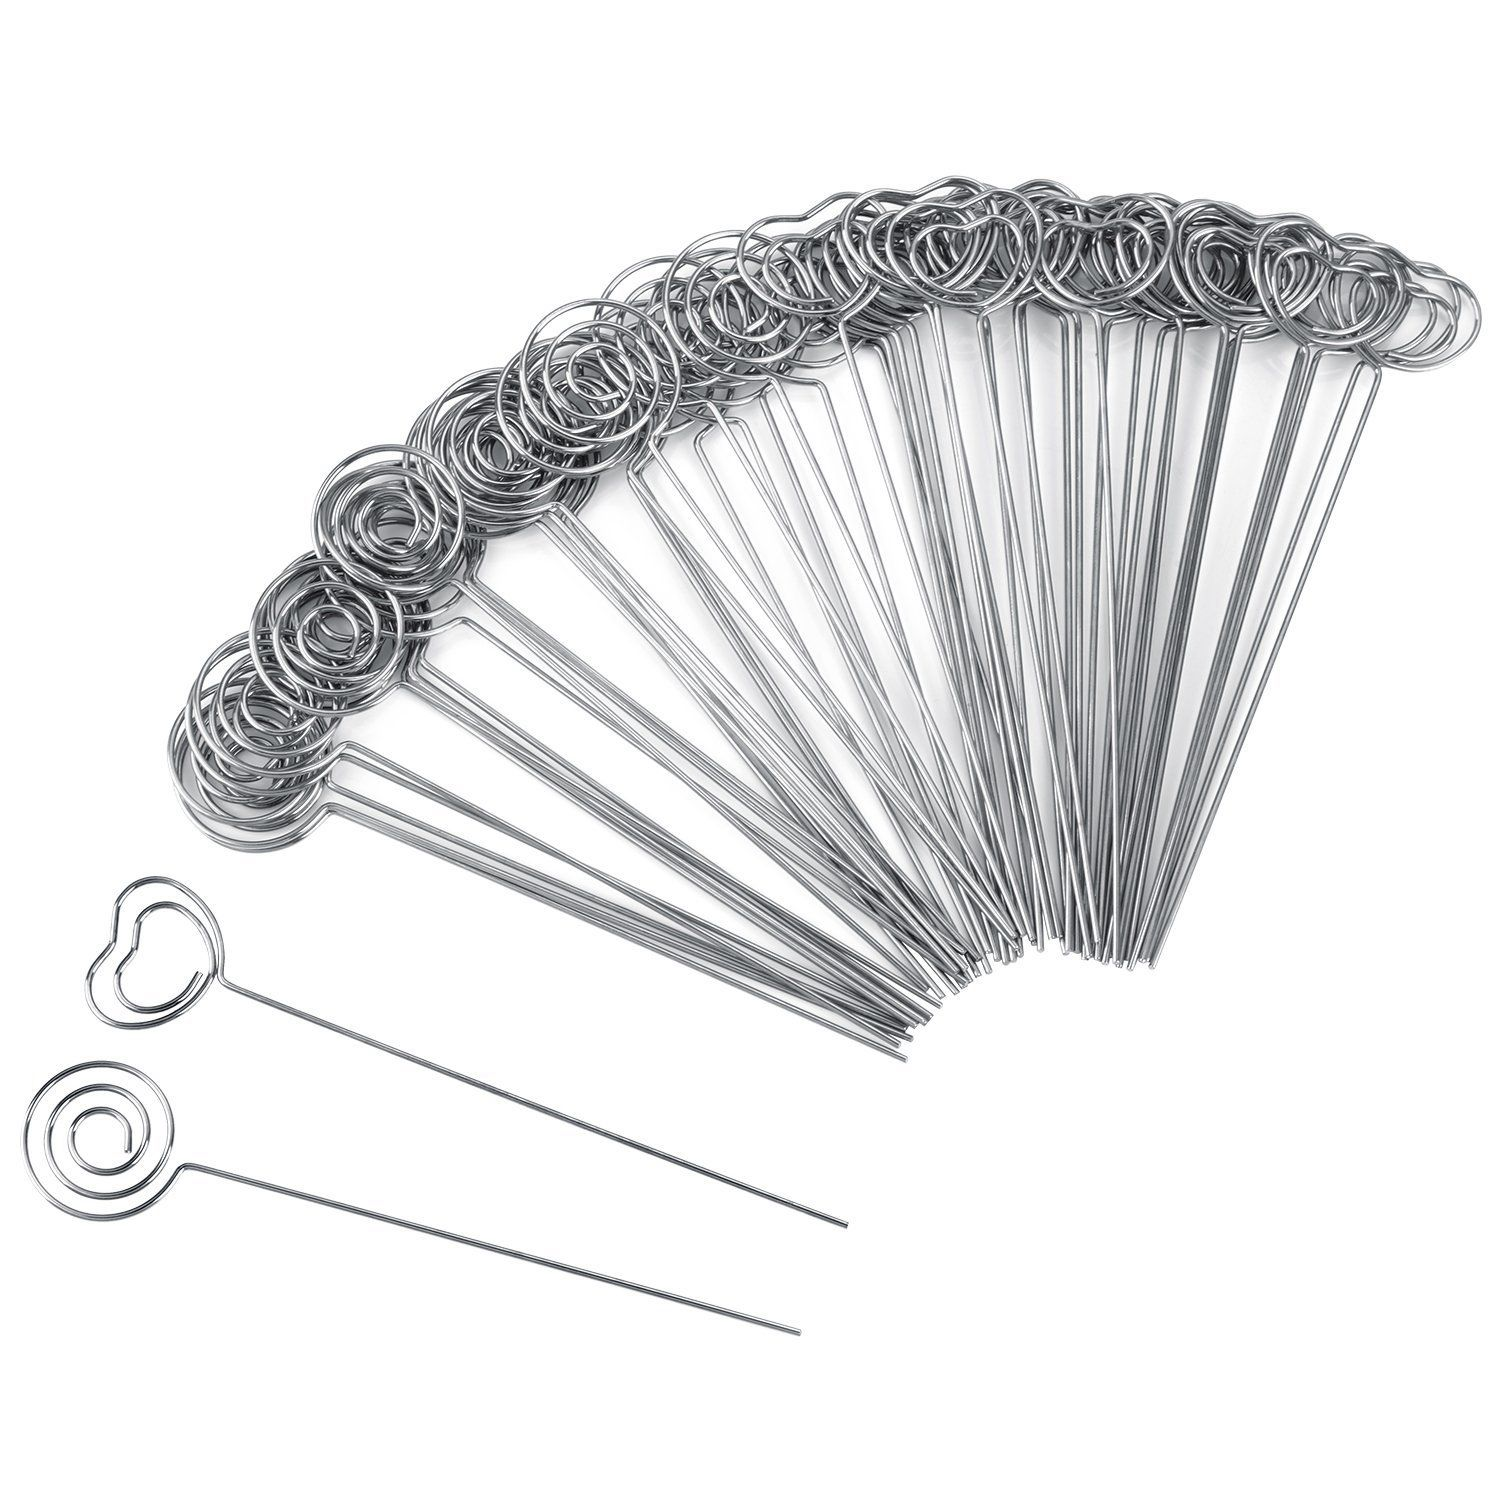 60 Pieces Metal Wires Memo Clip Note Card Holders Table Number Clip Photo Stand For Wedding Party Cake Decor, Round And Heart